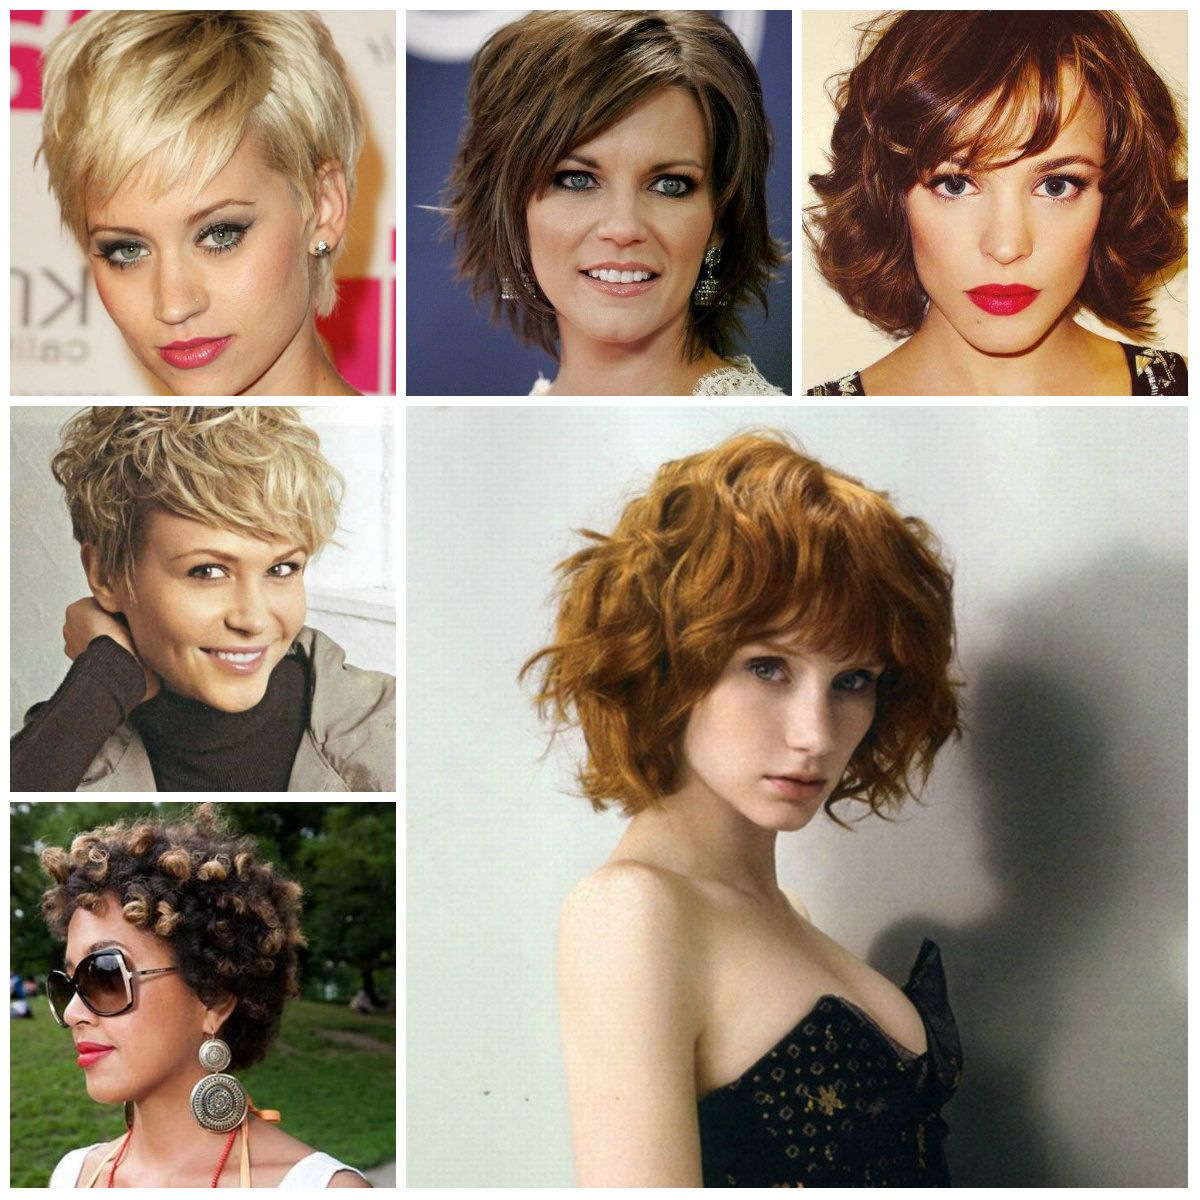 Short hairstyles trendy short hairstyles for women - Trendy Short Hairstyles For Thick Hair 2017